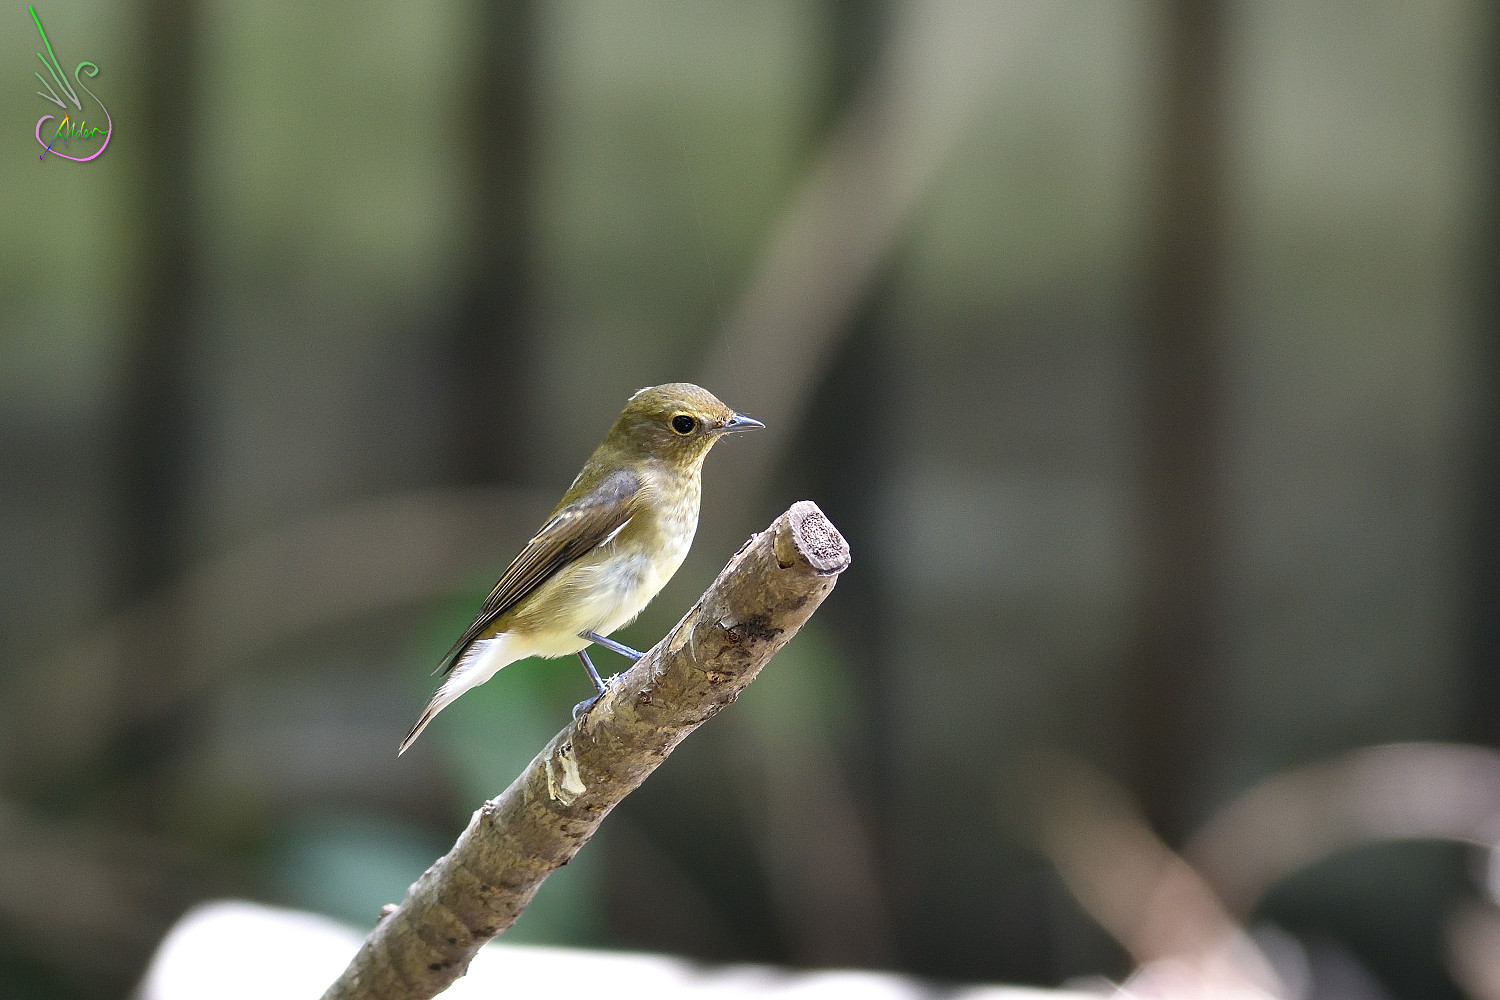 Narcissus_Flycatcher_8009